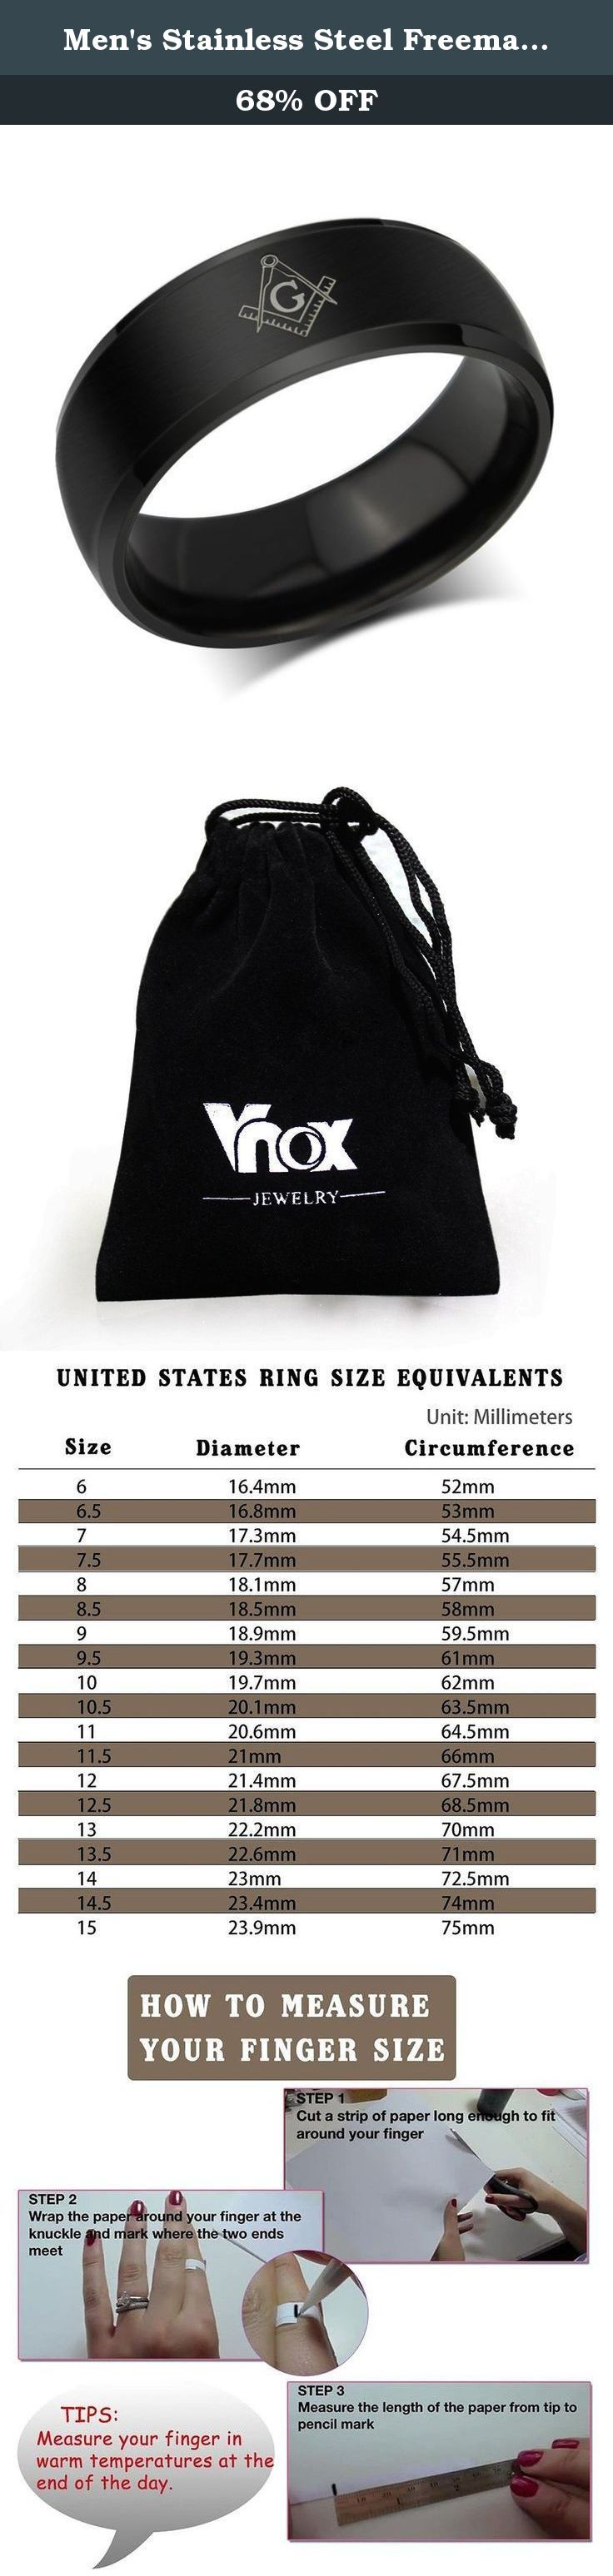 Men's Stainless Steel Freemason Symbol Engagement Promise Wedding Band Ring,Black,8mm,Size 12. The Vnox Discover the Vnox of elaborate and fashion jewelry. The high-quality jewelry featured in the Vnox offers great values at affordable Price, they mainly made of high quality Stainless Steel,Tungsten,Alloy and Leather. Find a special gift for a loved one or a beautiful piece that complements your personal style with jewelry from the Vnox. Stainless Steel Stainless steel has increasingly…